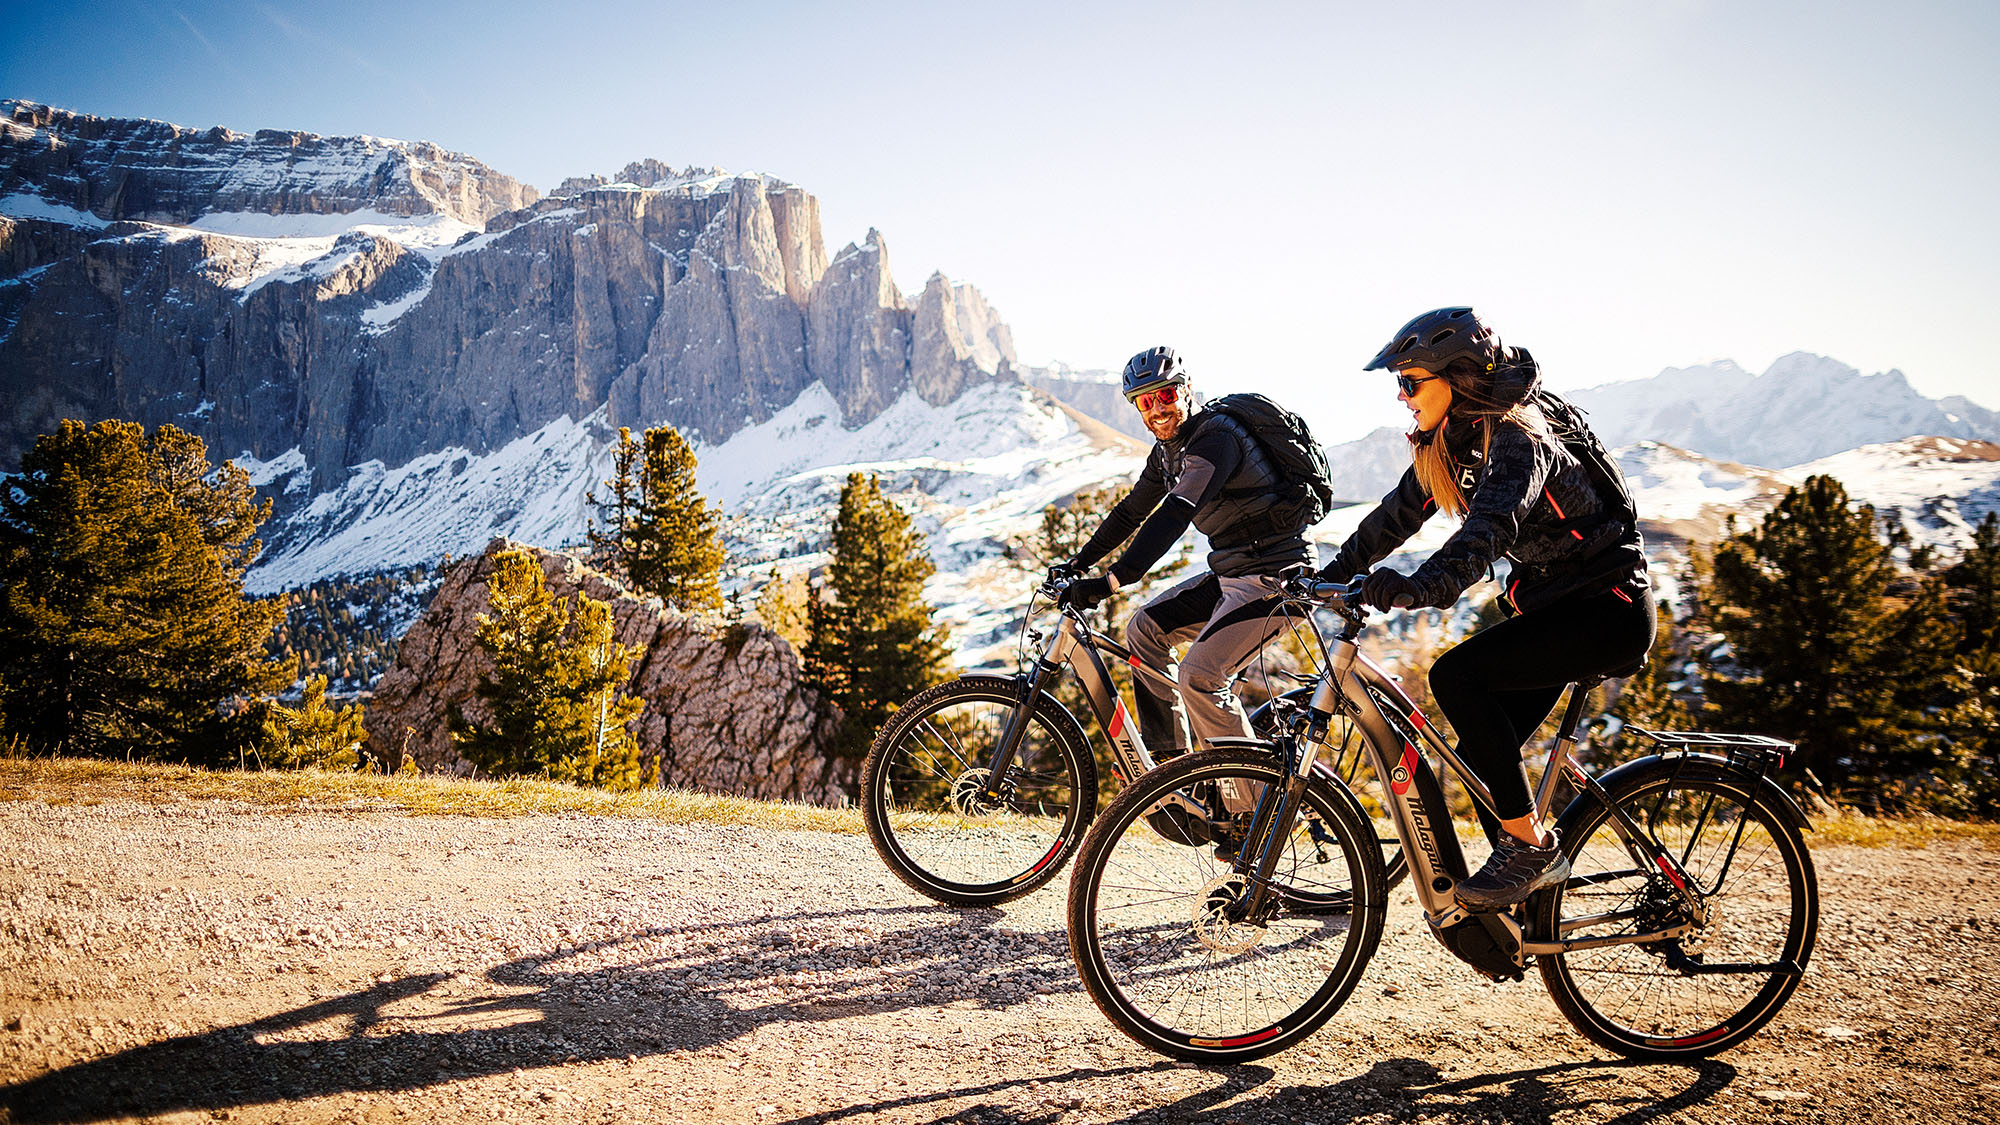 https://malaguti-bicycles.com/wp-content/uploads/sites/2/2020/11/MALAGUTI20_CORTINACAREZZA_DOLOMITES_byADL-8454.jpg